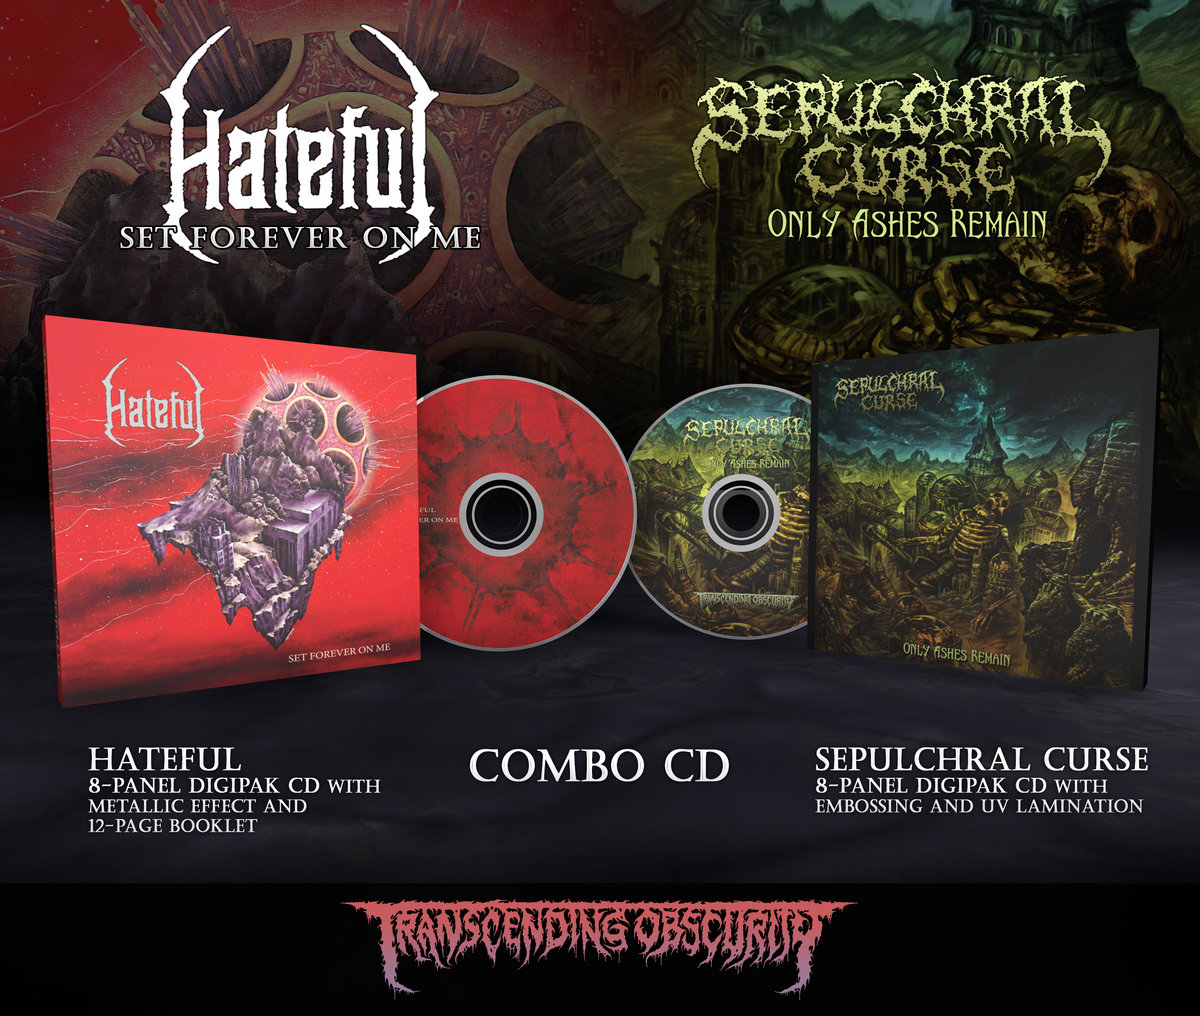 HATEFUL + SEPULCHRAL CURSE 8-Panel Digipak CD Combo